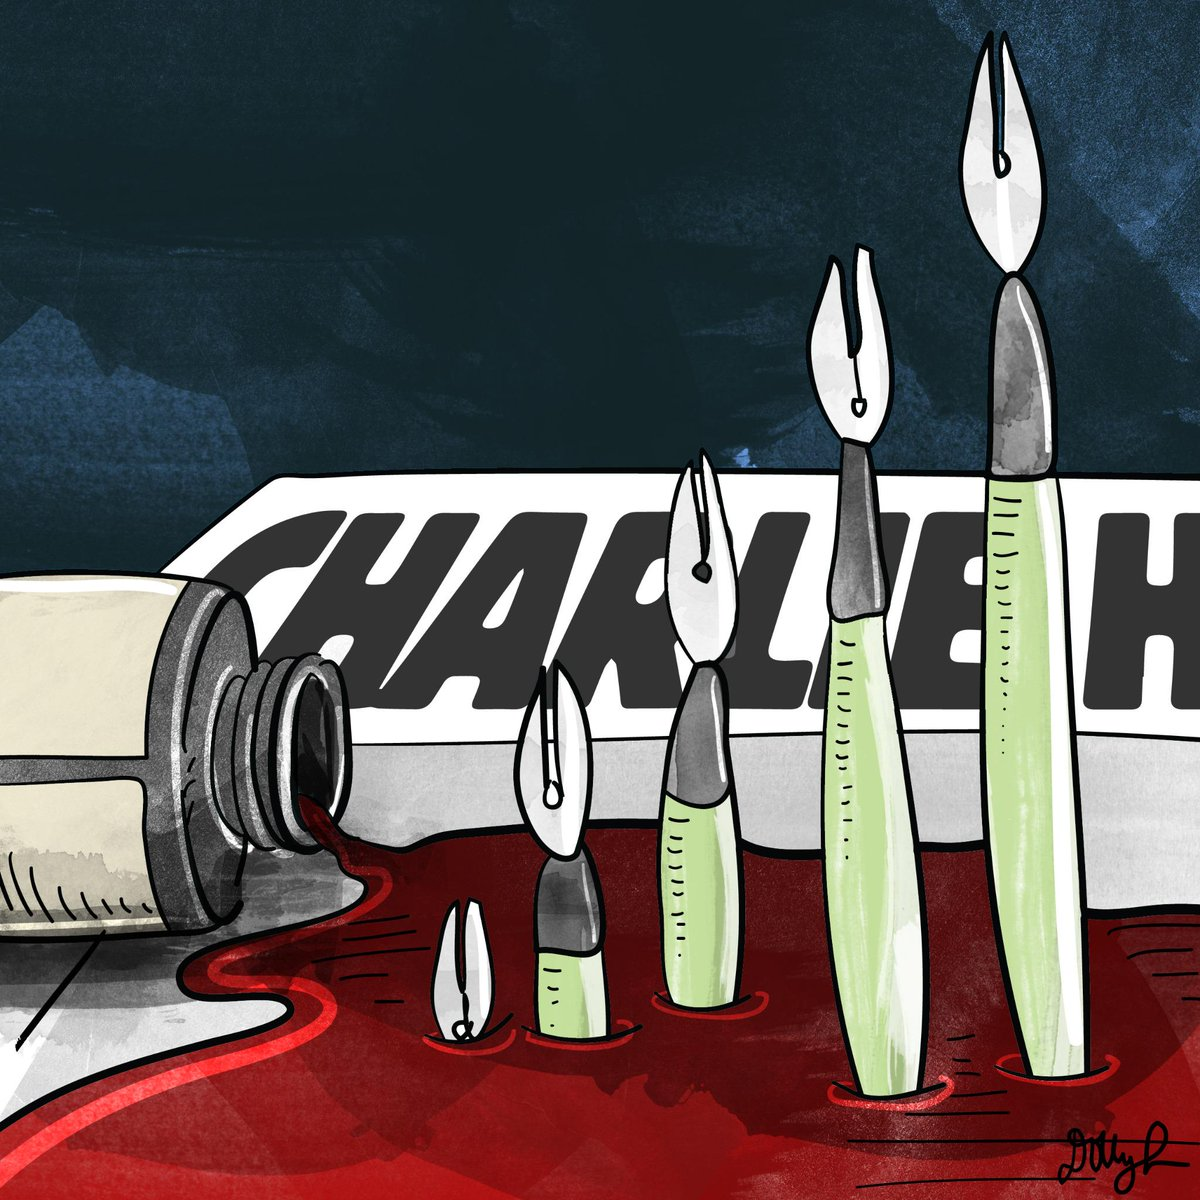 "AJ+ illustrator @dollyli reacts to the #CharlieHebdo massacre: ""We will rise and continue expressing."" #JeSuisCharlie http://t.co/ldpfPrIBNC"